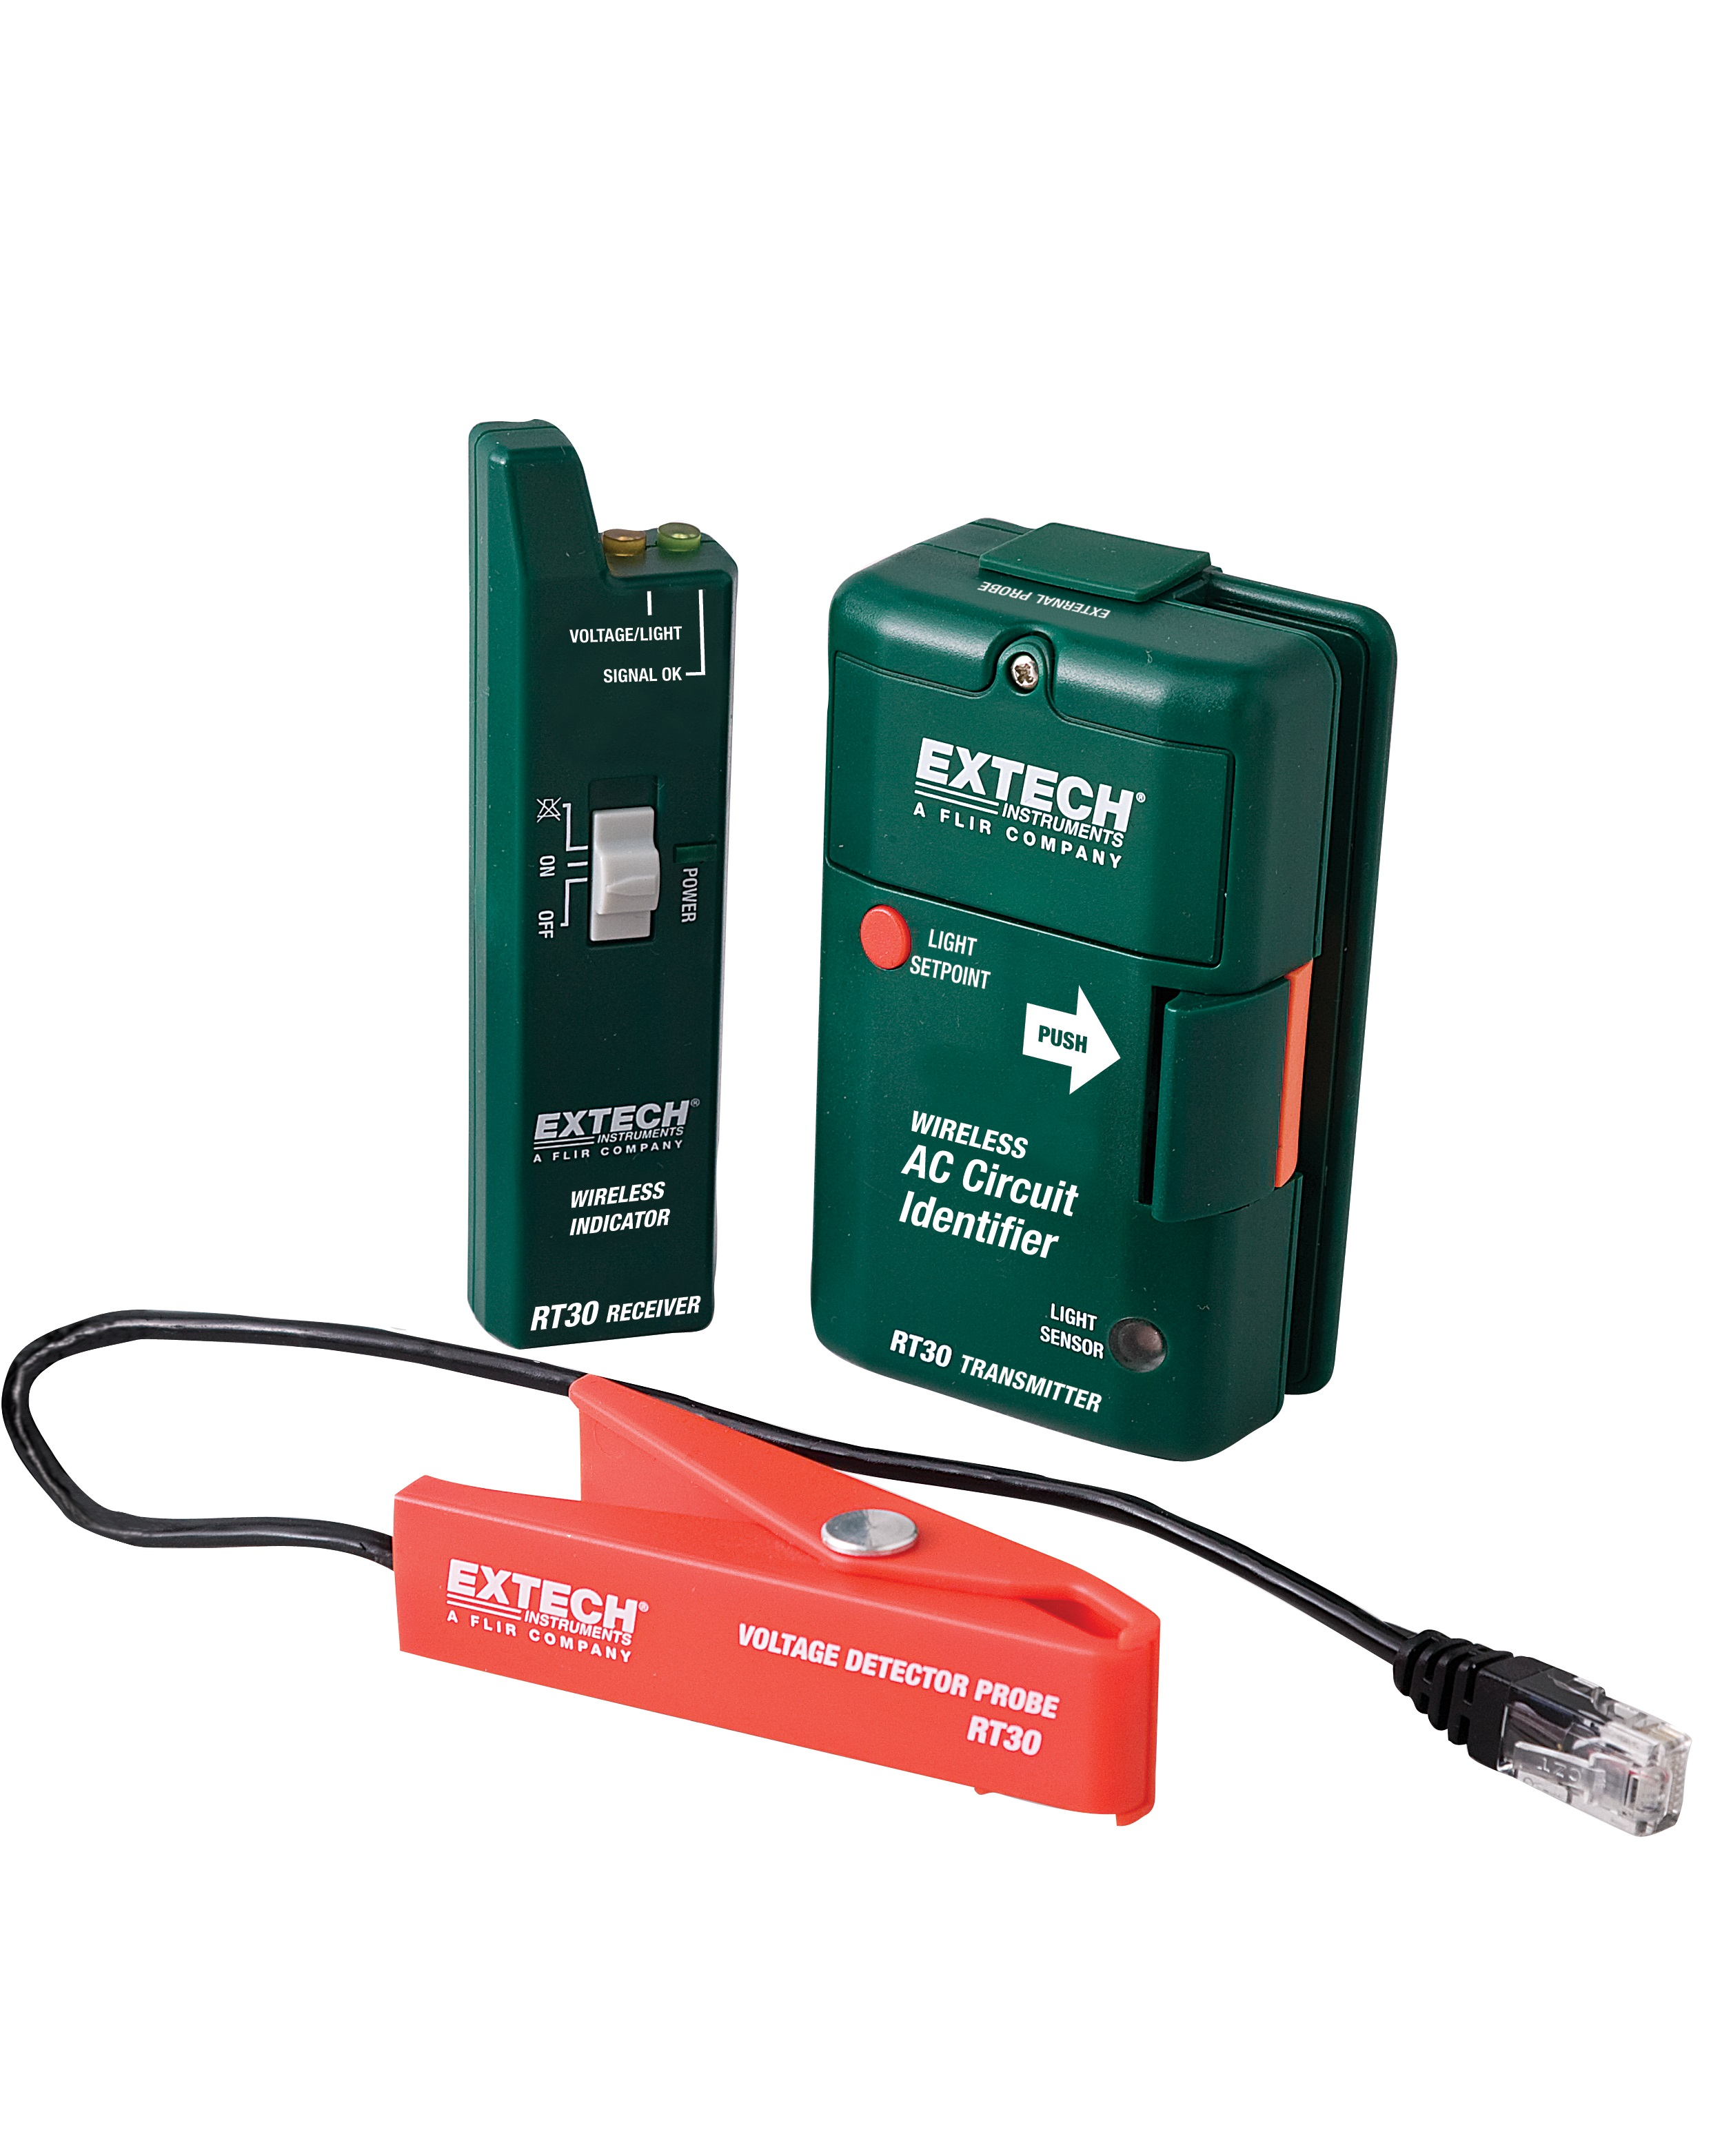 Extech Cb10 Ac Circuit Breaker Finder Receptacle Tester Check For 3 Wire 125v Circuits Rt30 Wireless Identifier 914mhz With External Probe